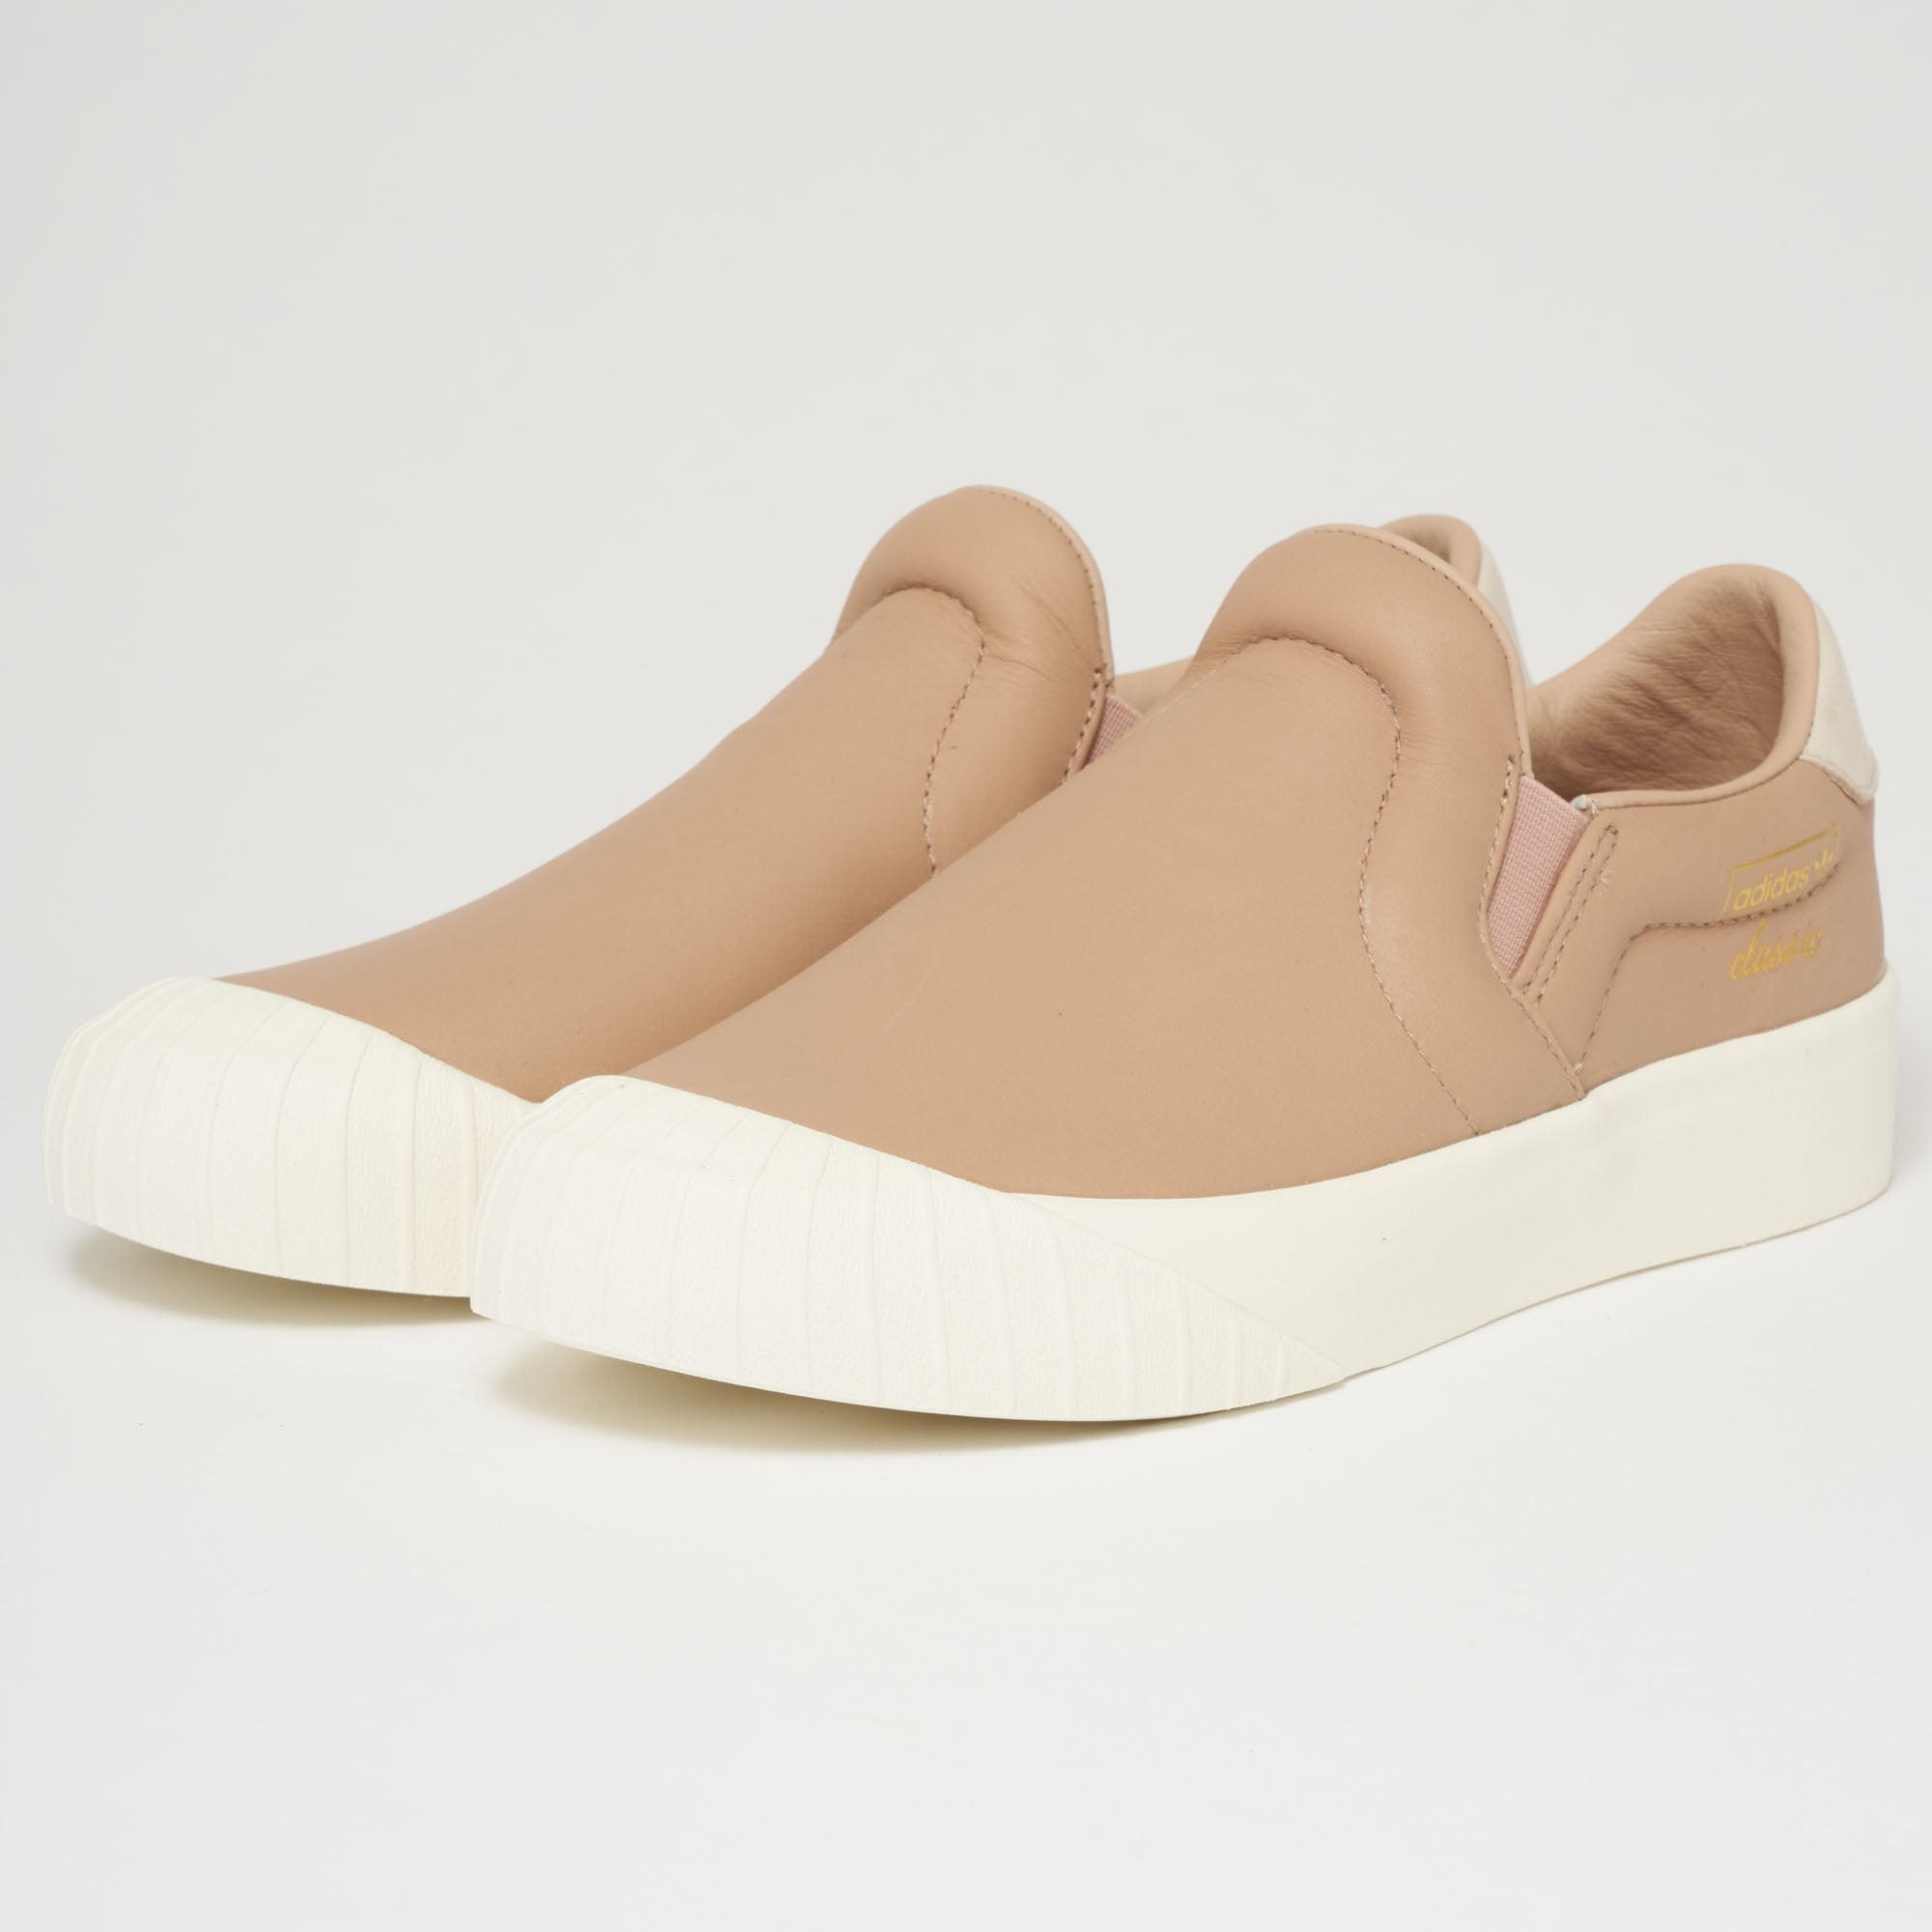 e53e0edd4c2 Adidas Originals Womens Everyn Slip-On Trainer